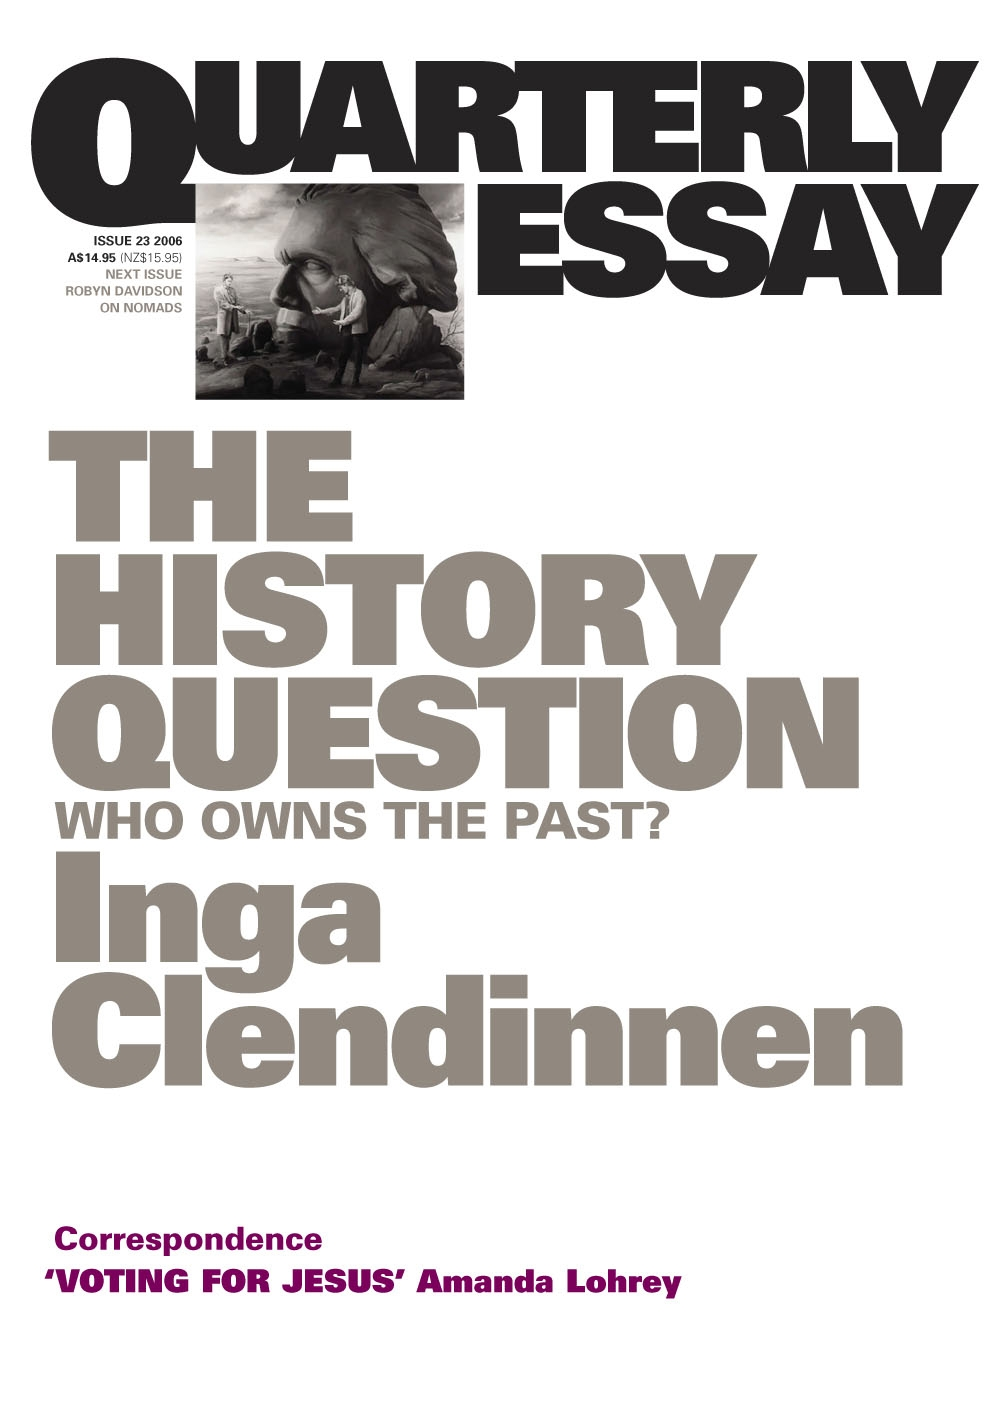 Who owns the past essay